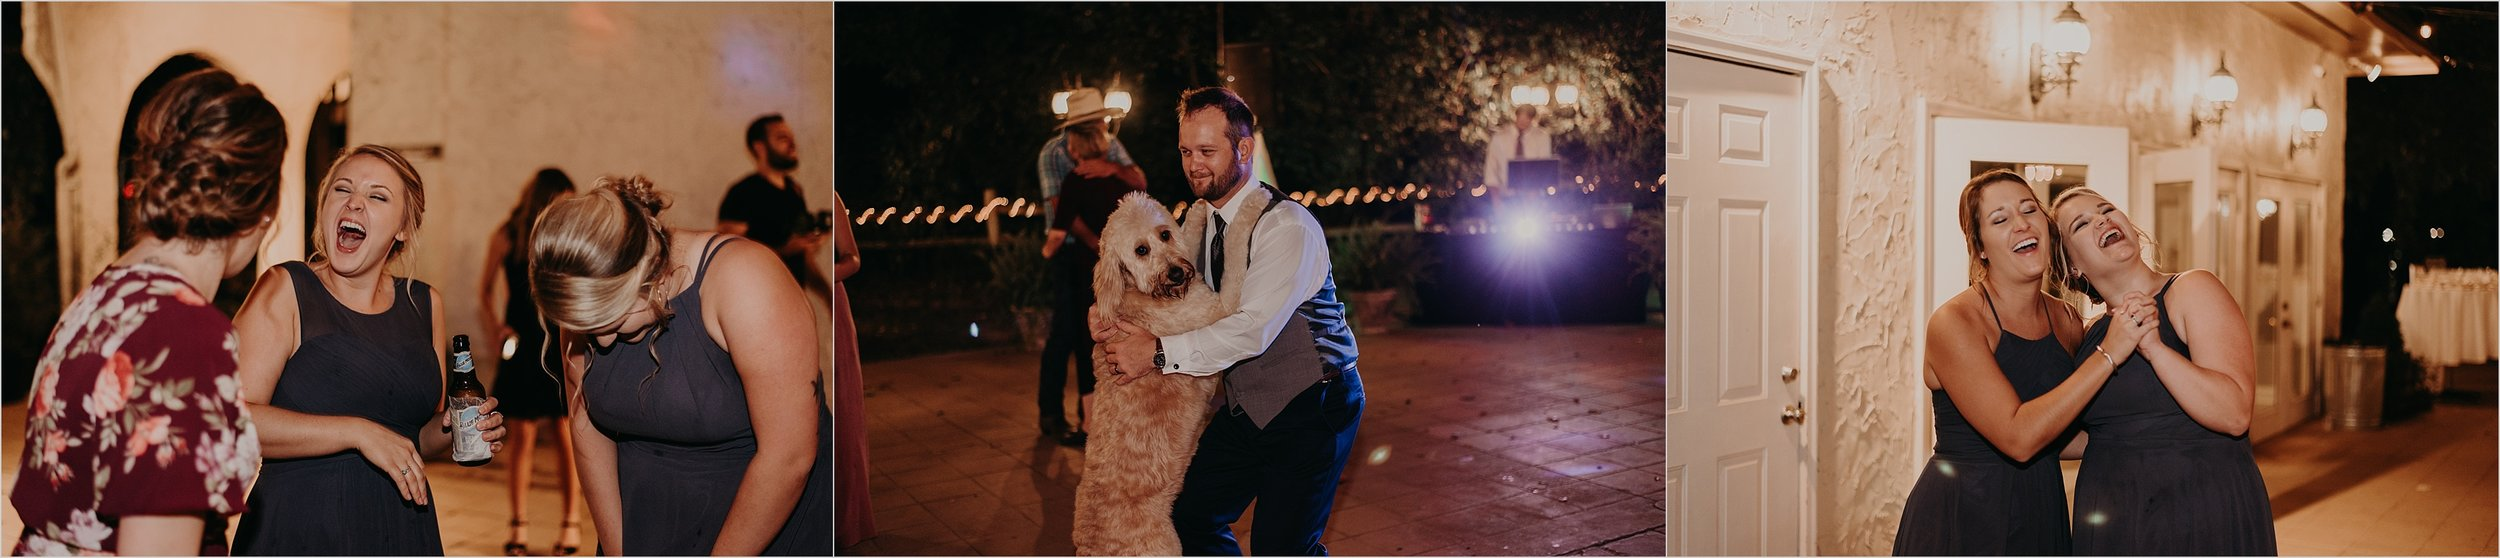 Wedding party has a great time at reception